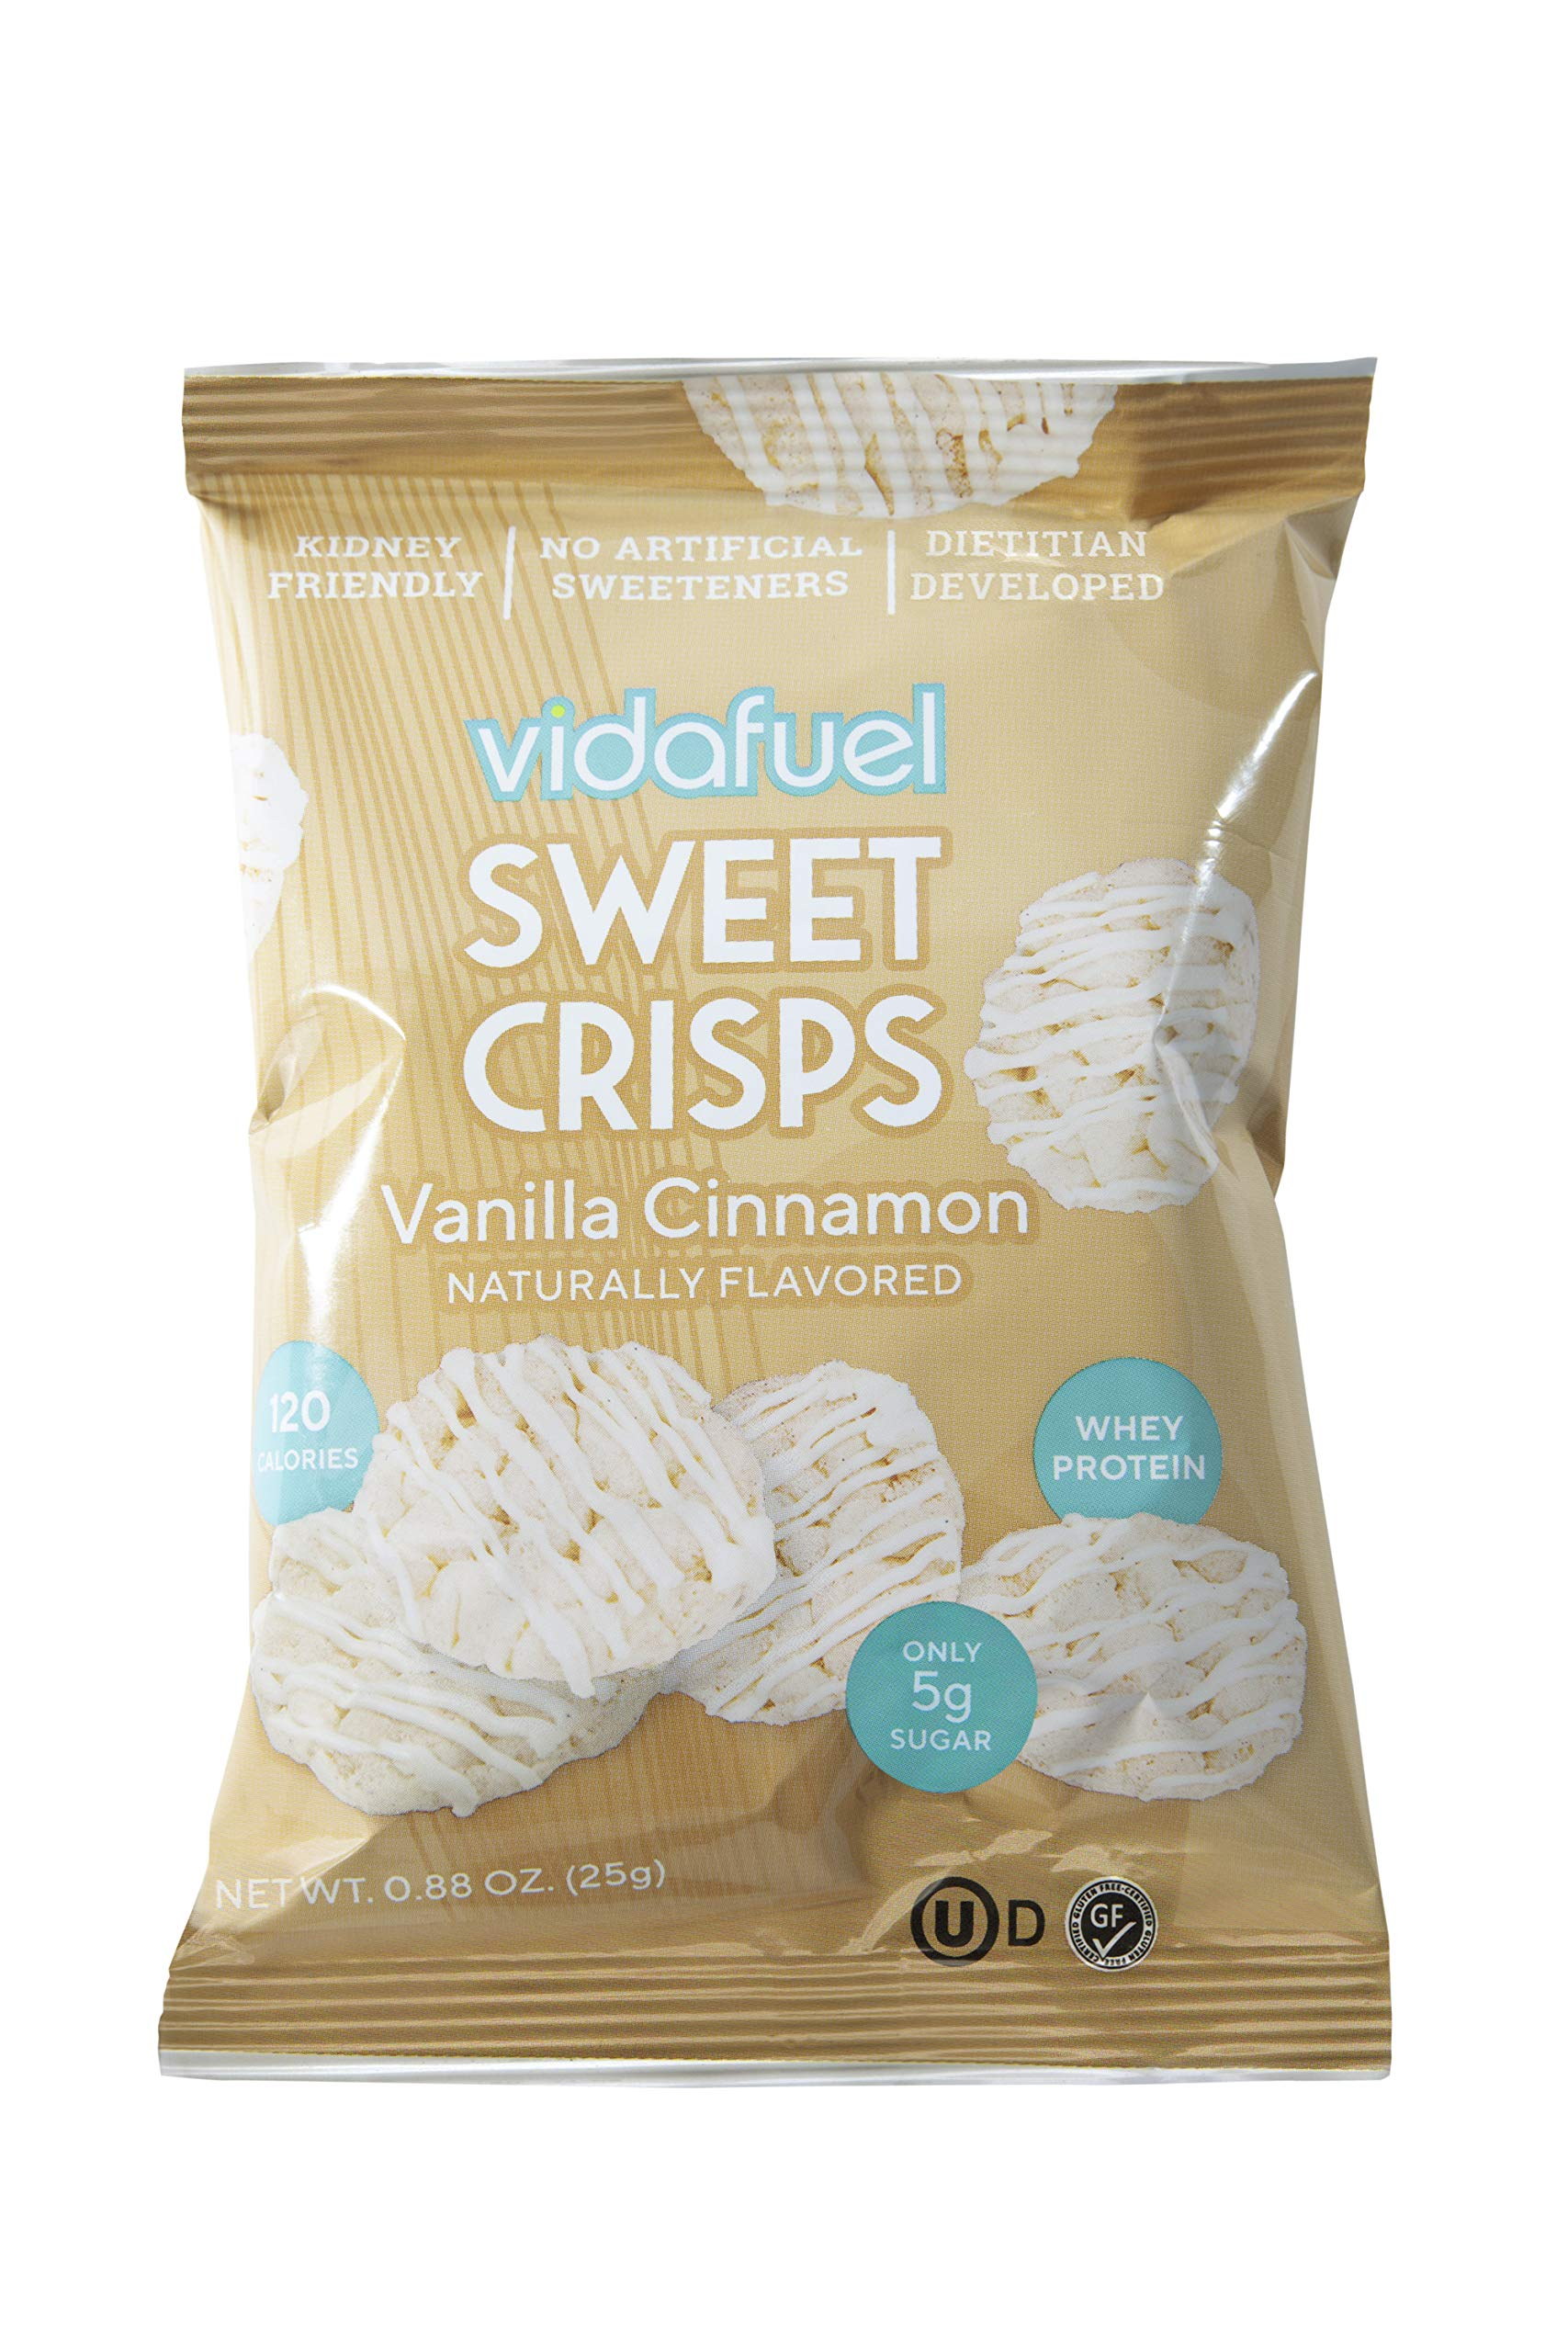 VidaFuel Healthy Whey Protein Sweet Crisps, Kidney Friendly, Heart Healthy, Dietitian Developed, No Artificial Sweeteners or Colors, No Sugar Alcohols, Vanilla Cinnamon, 0.88 Ounce Bag, Pack of 24 by vidafuel